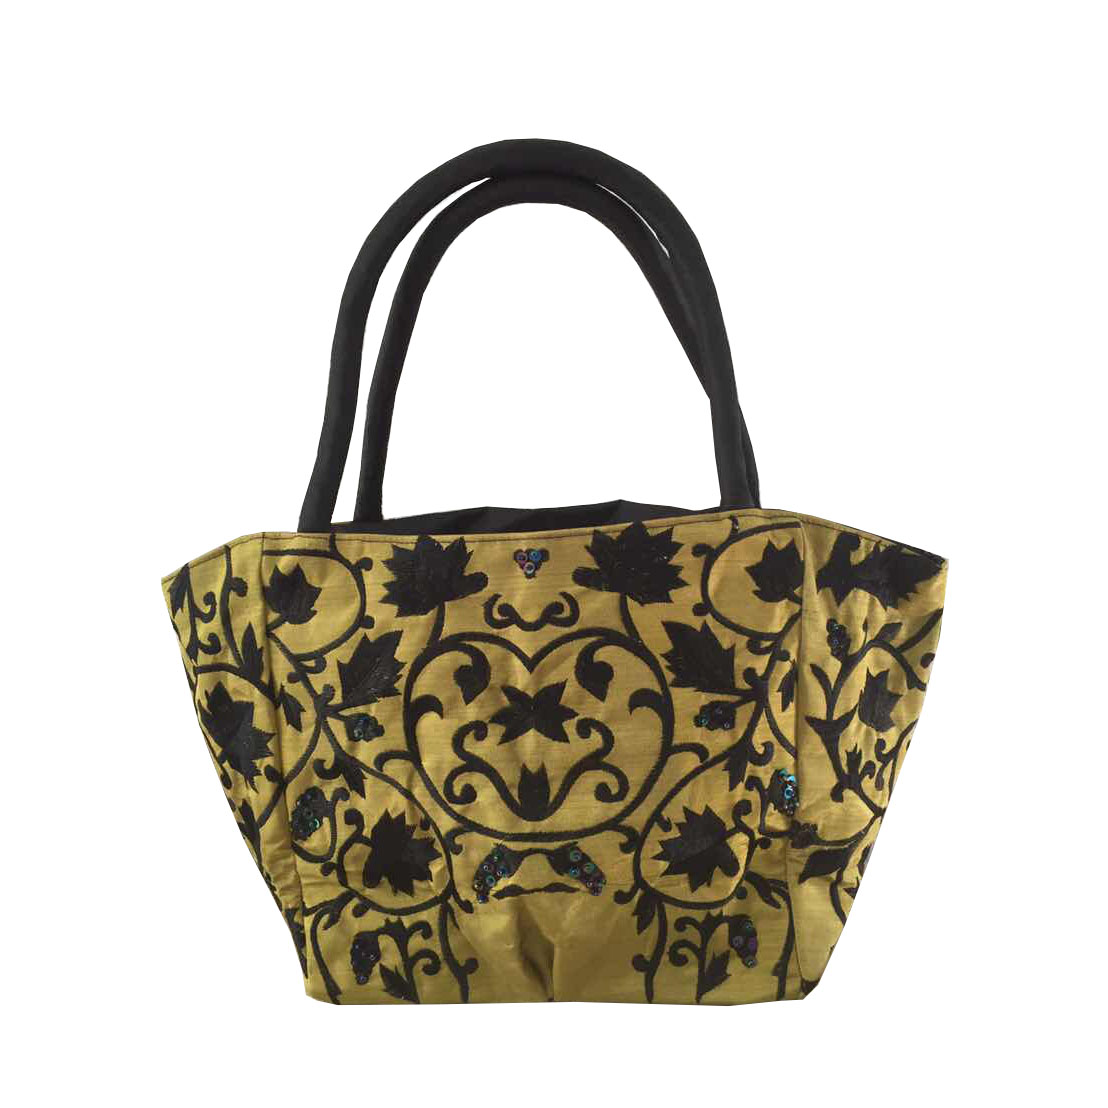 Gold silk handbag